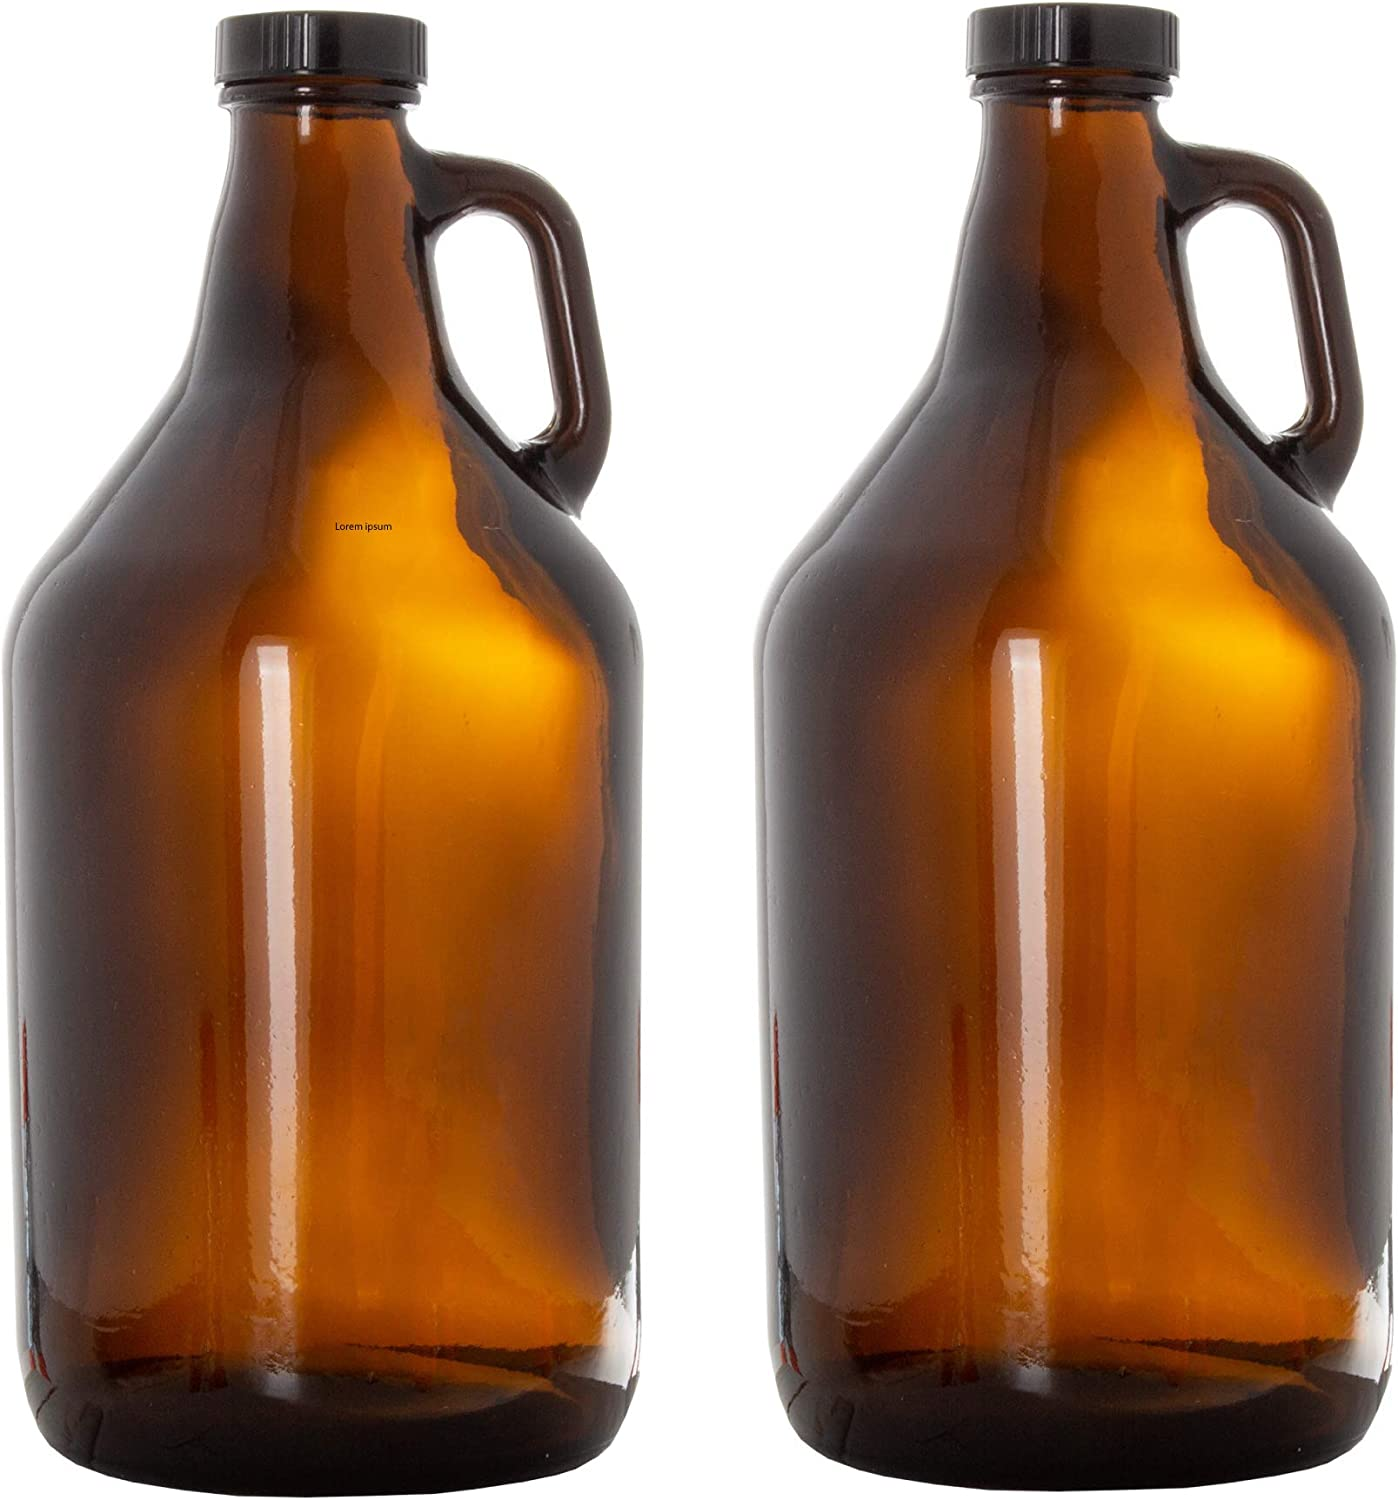 Glass Growlers for Beer, 2 Pack with Funnel - 64 oz Growler Set with Lids - Great for Home Brewing, Kombucha & More